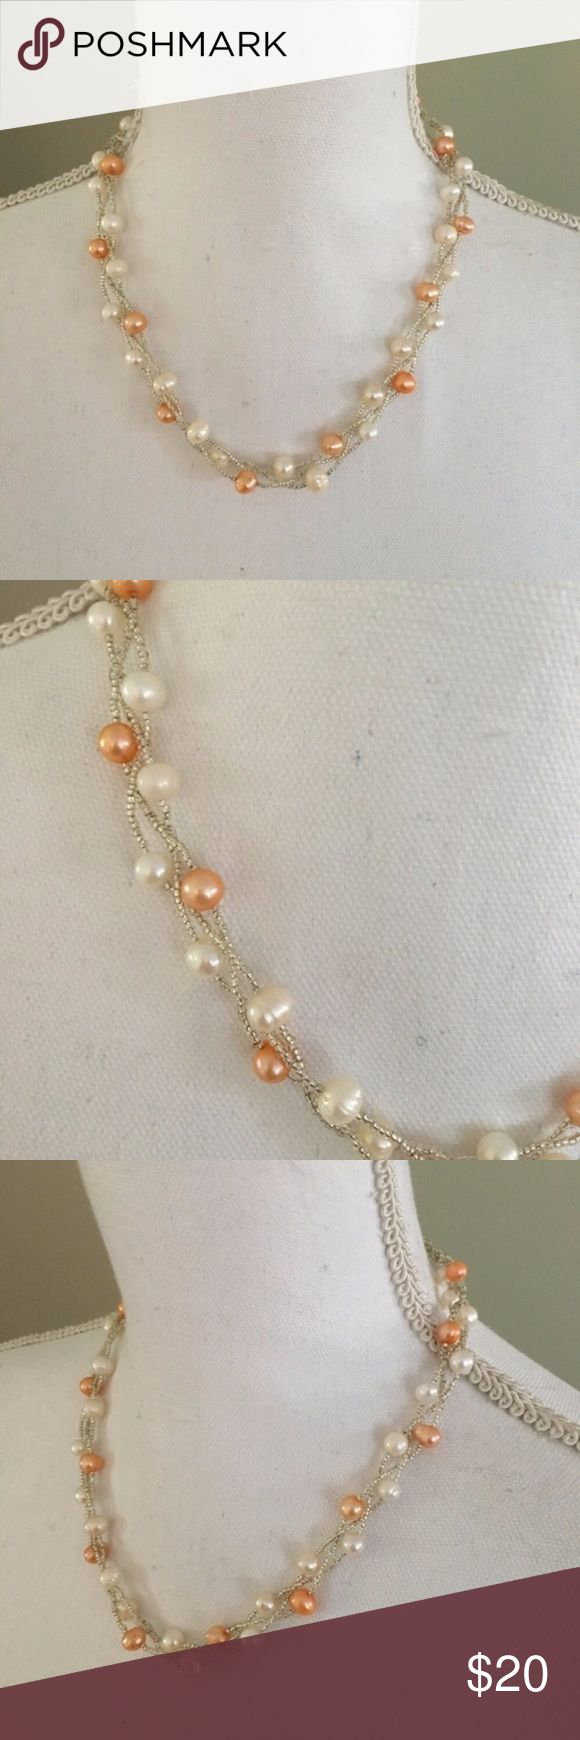 """Pink and White Freshwater Pearls These pink/peach and white freshwater pearled are intertwined with clear beads. Clasp closure. Length: 19.5"""". Jewelry Necklaces"""